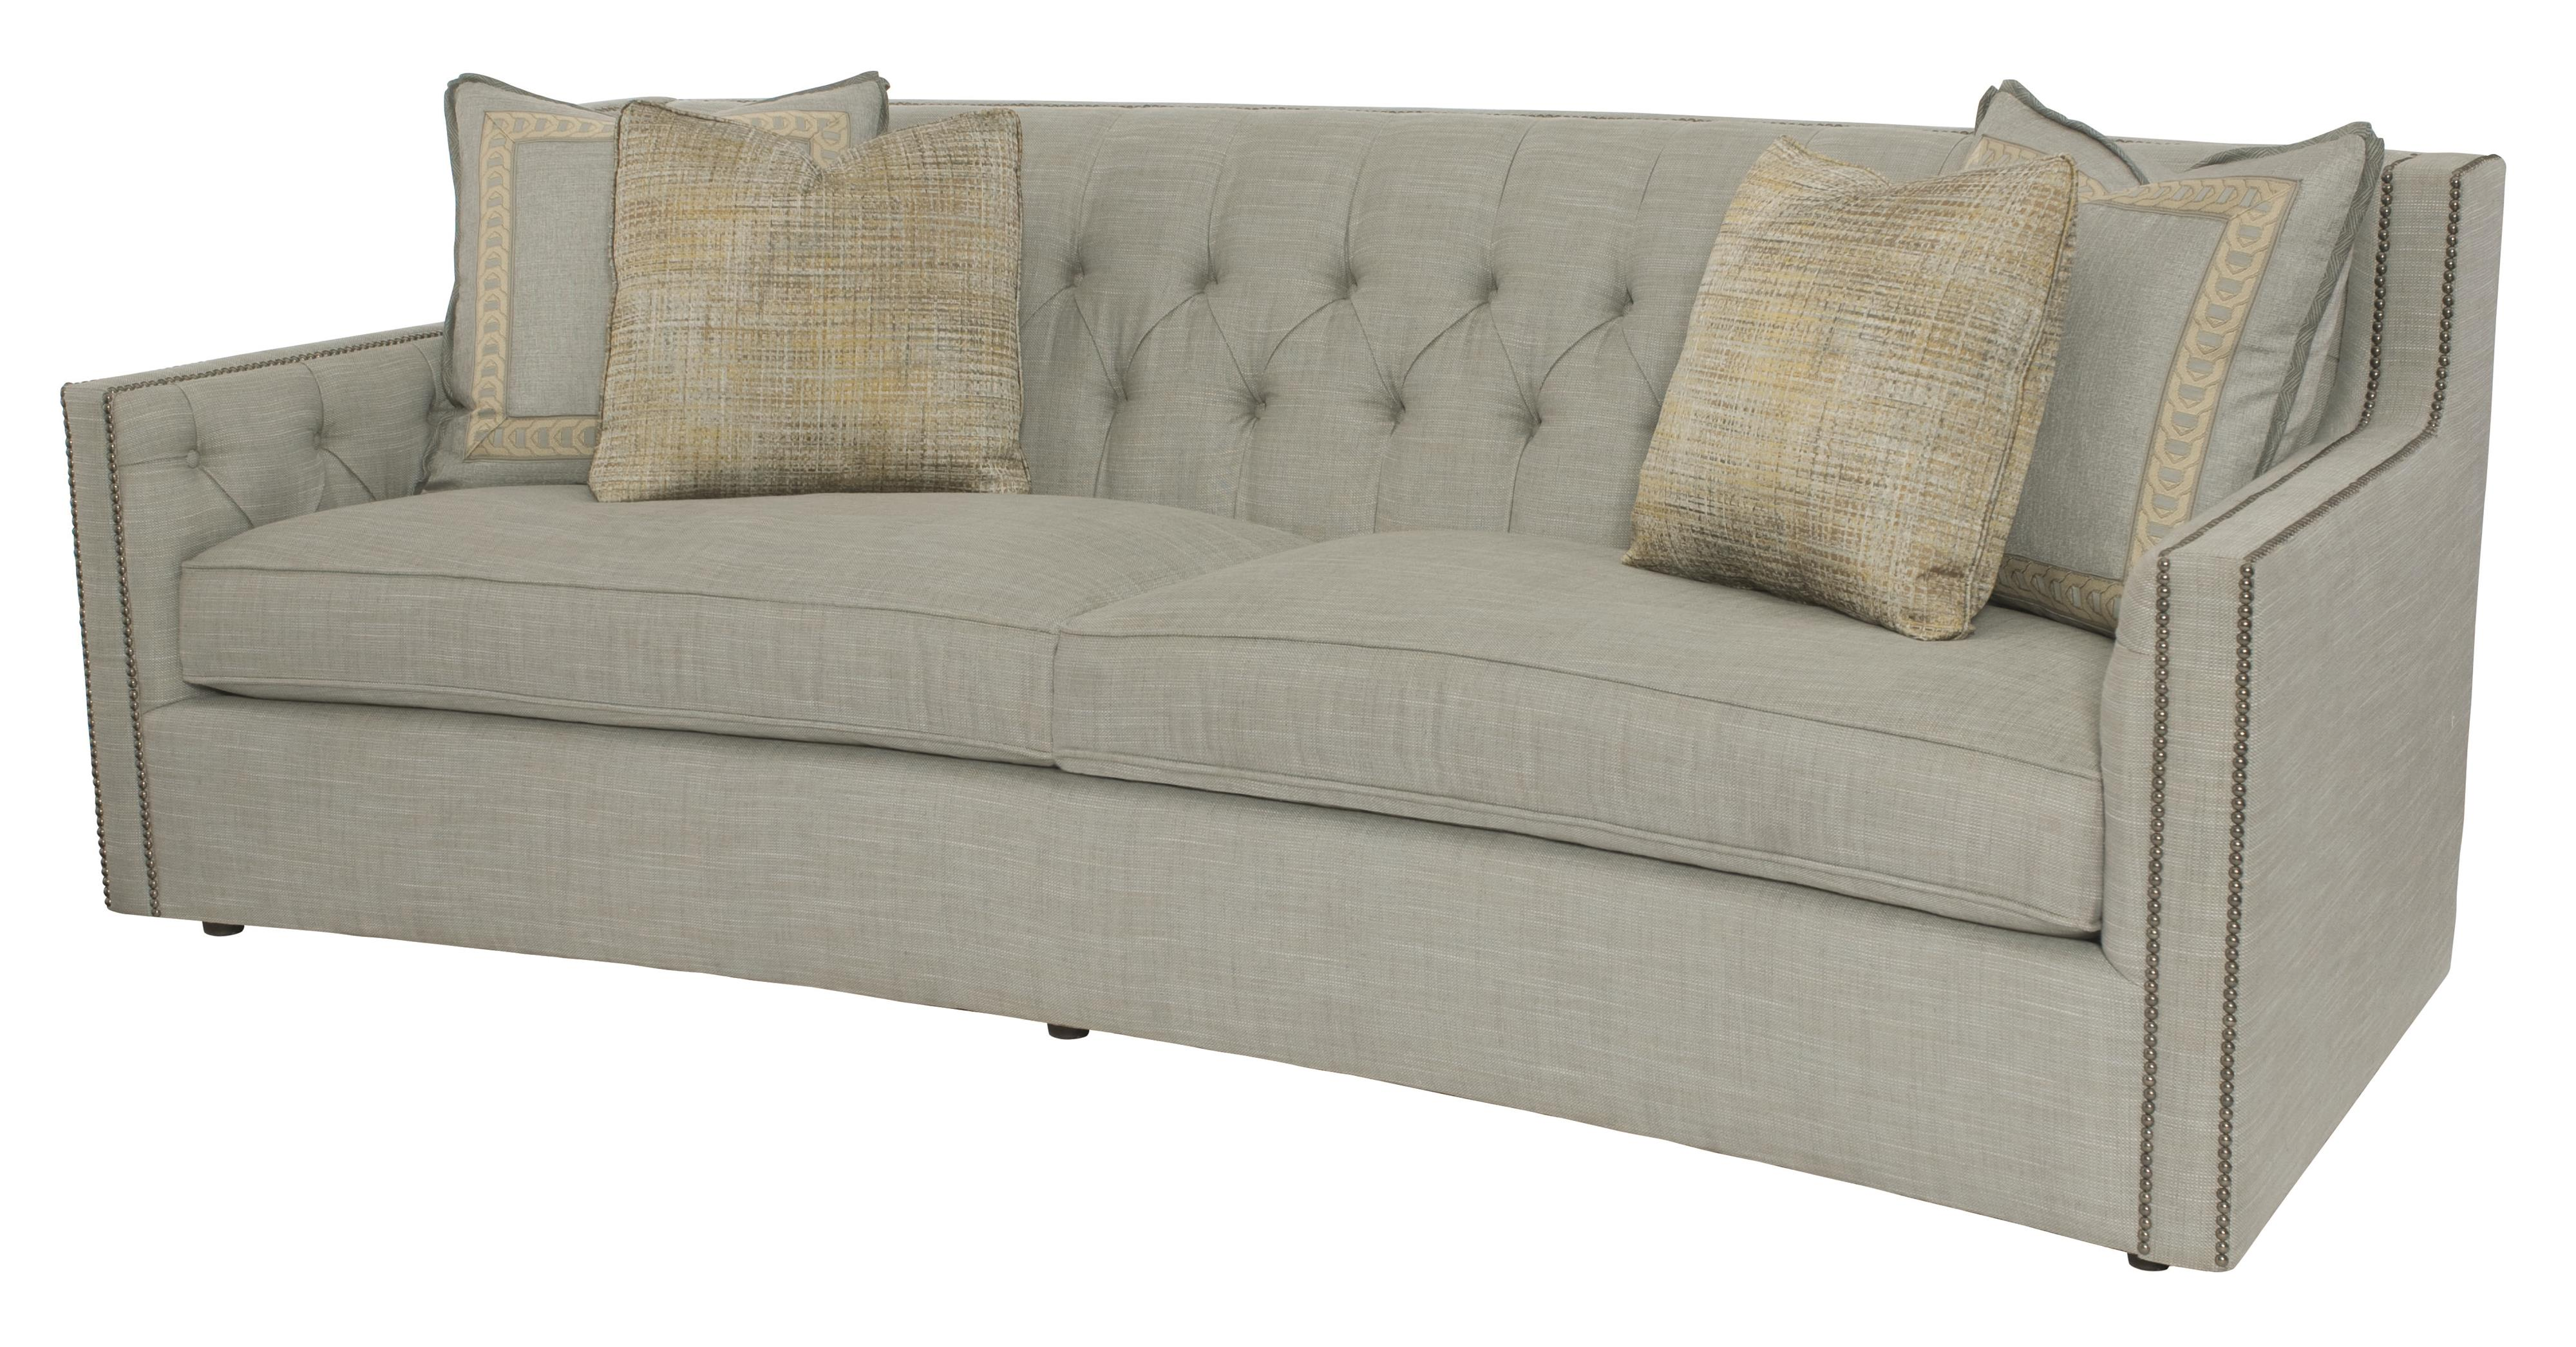 Bernhardt Candace Sofa with Transitional Elegance | Story ...